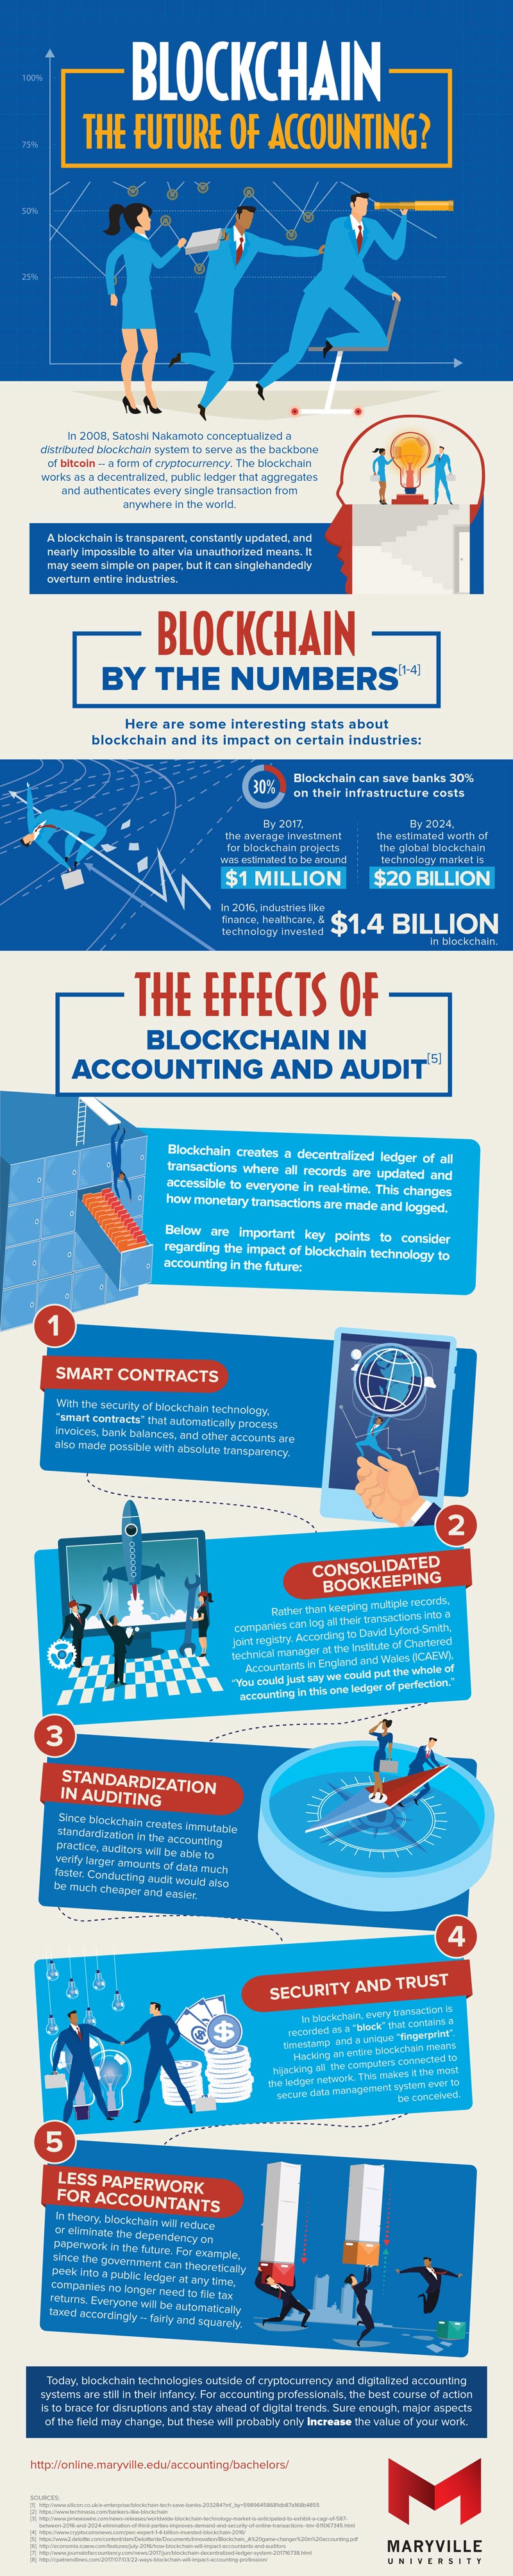 Blockchain: The Future of Accounting? Infographic